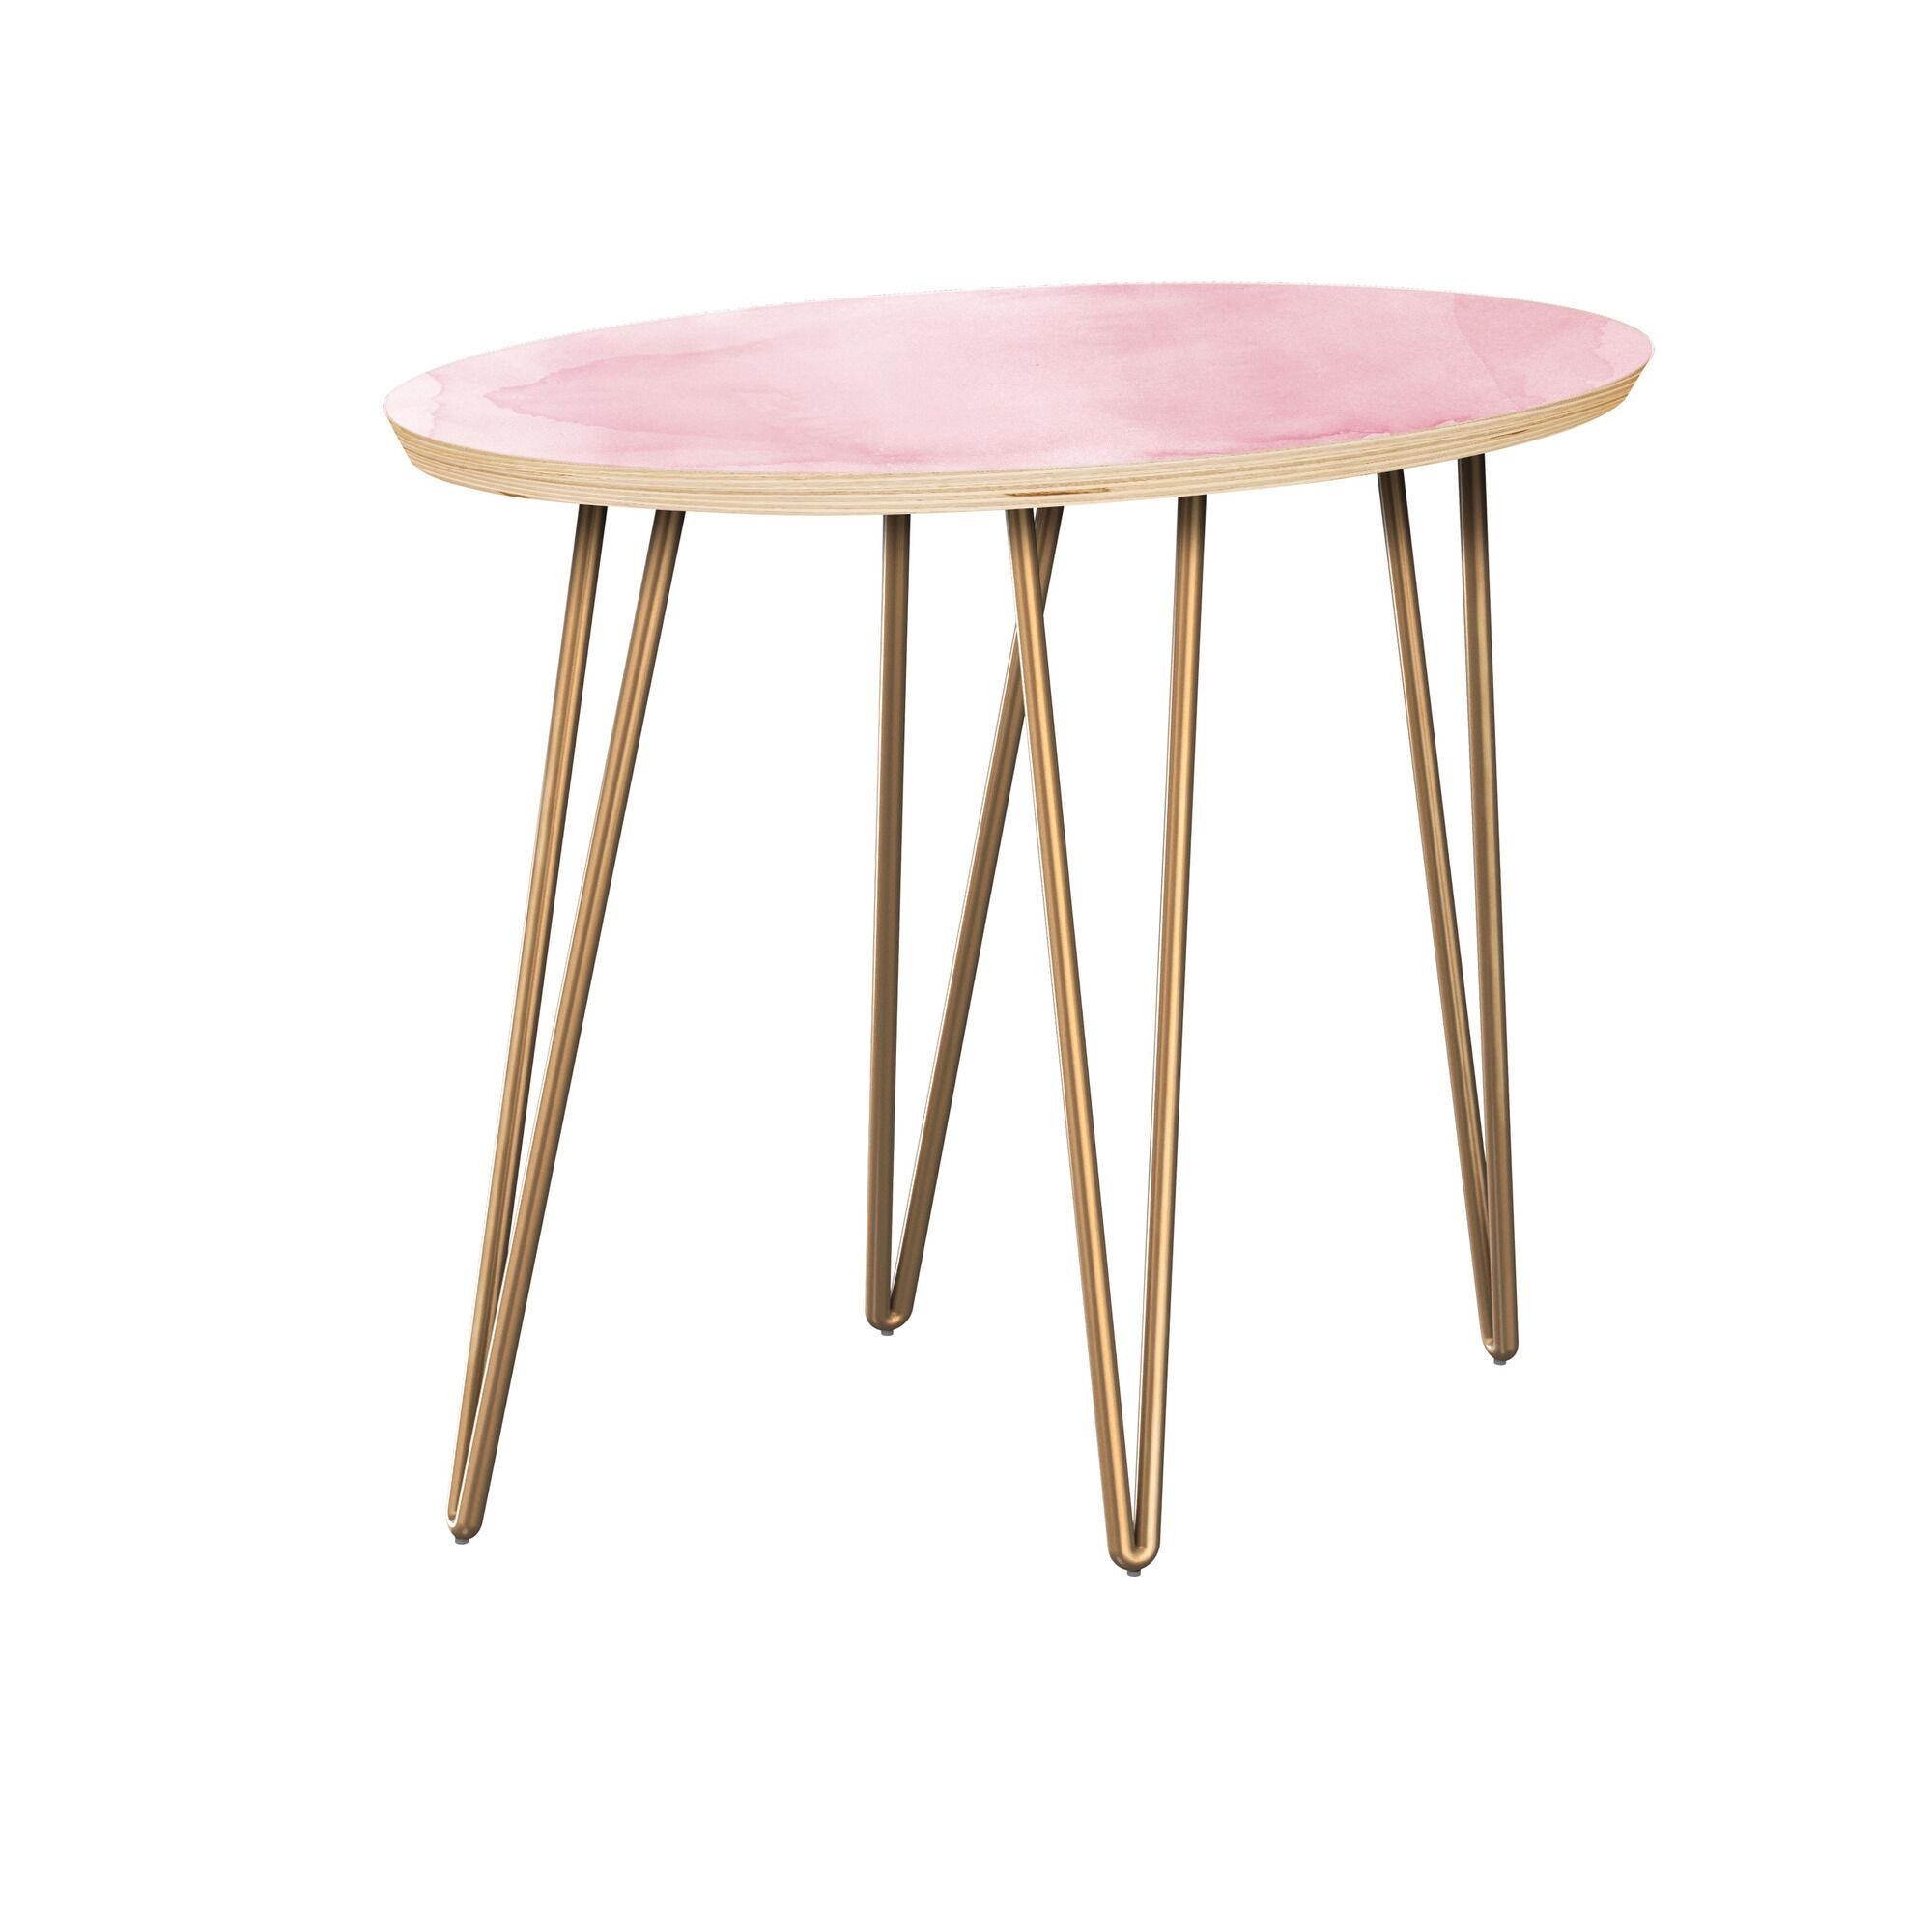 Jarred End Table Table Top Boarder Color: Natural, Table Base Color: Brass, Table Top Color: Gray/Black